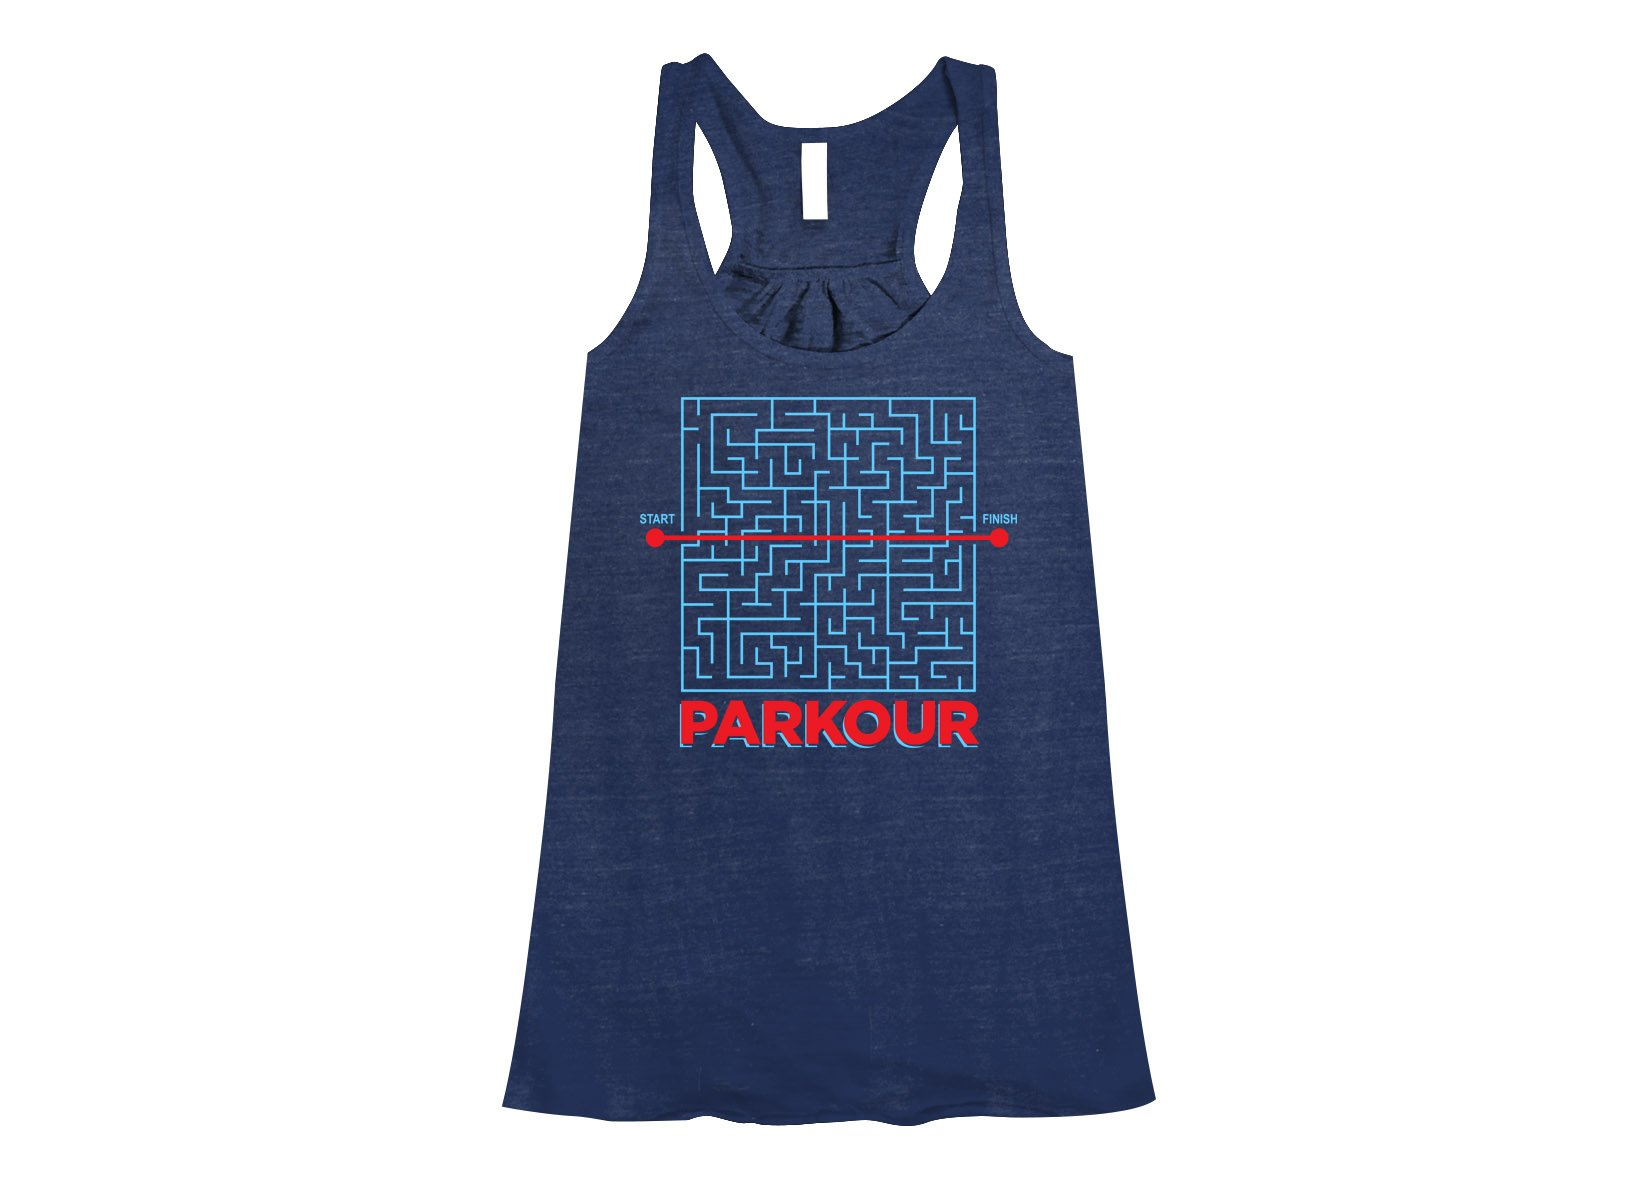 Parkour on Womens Tanks T-Shirt